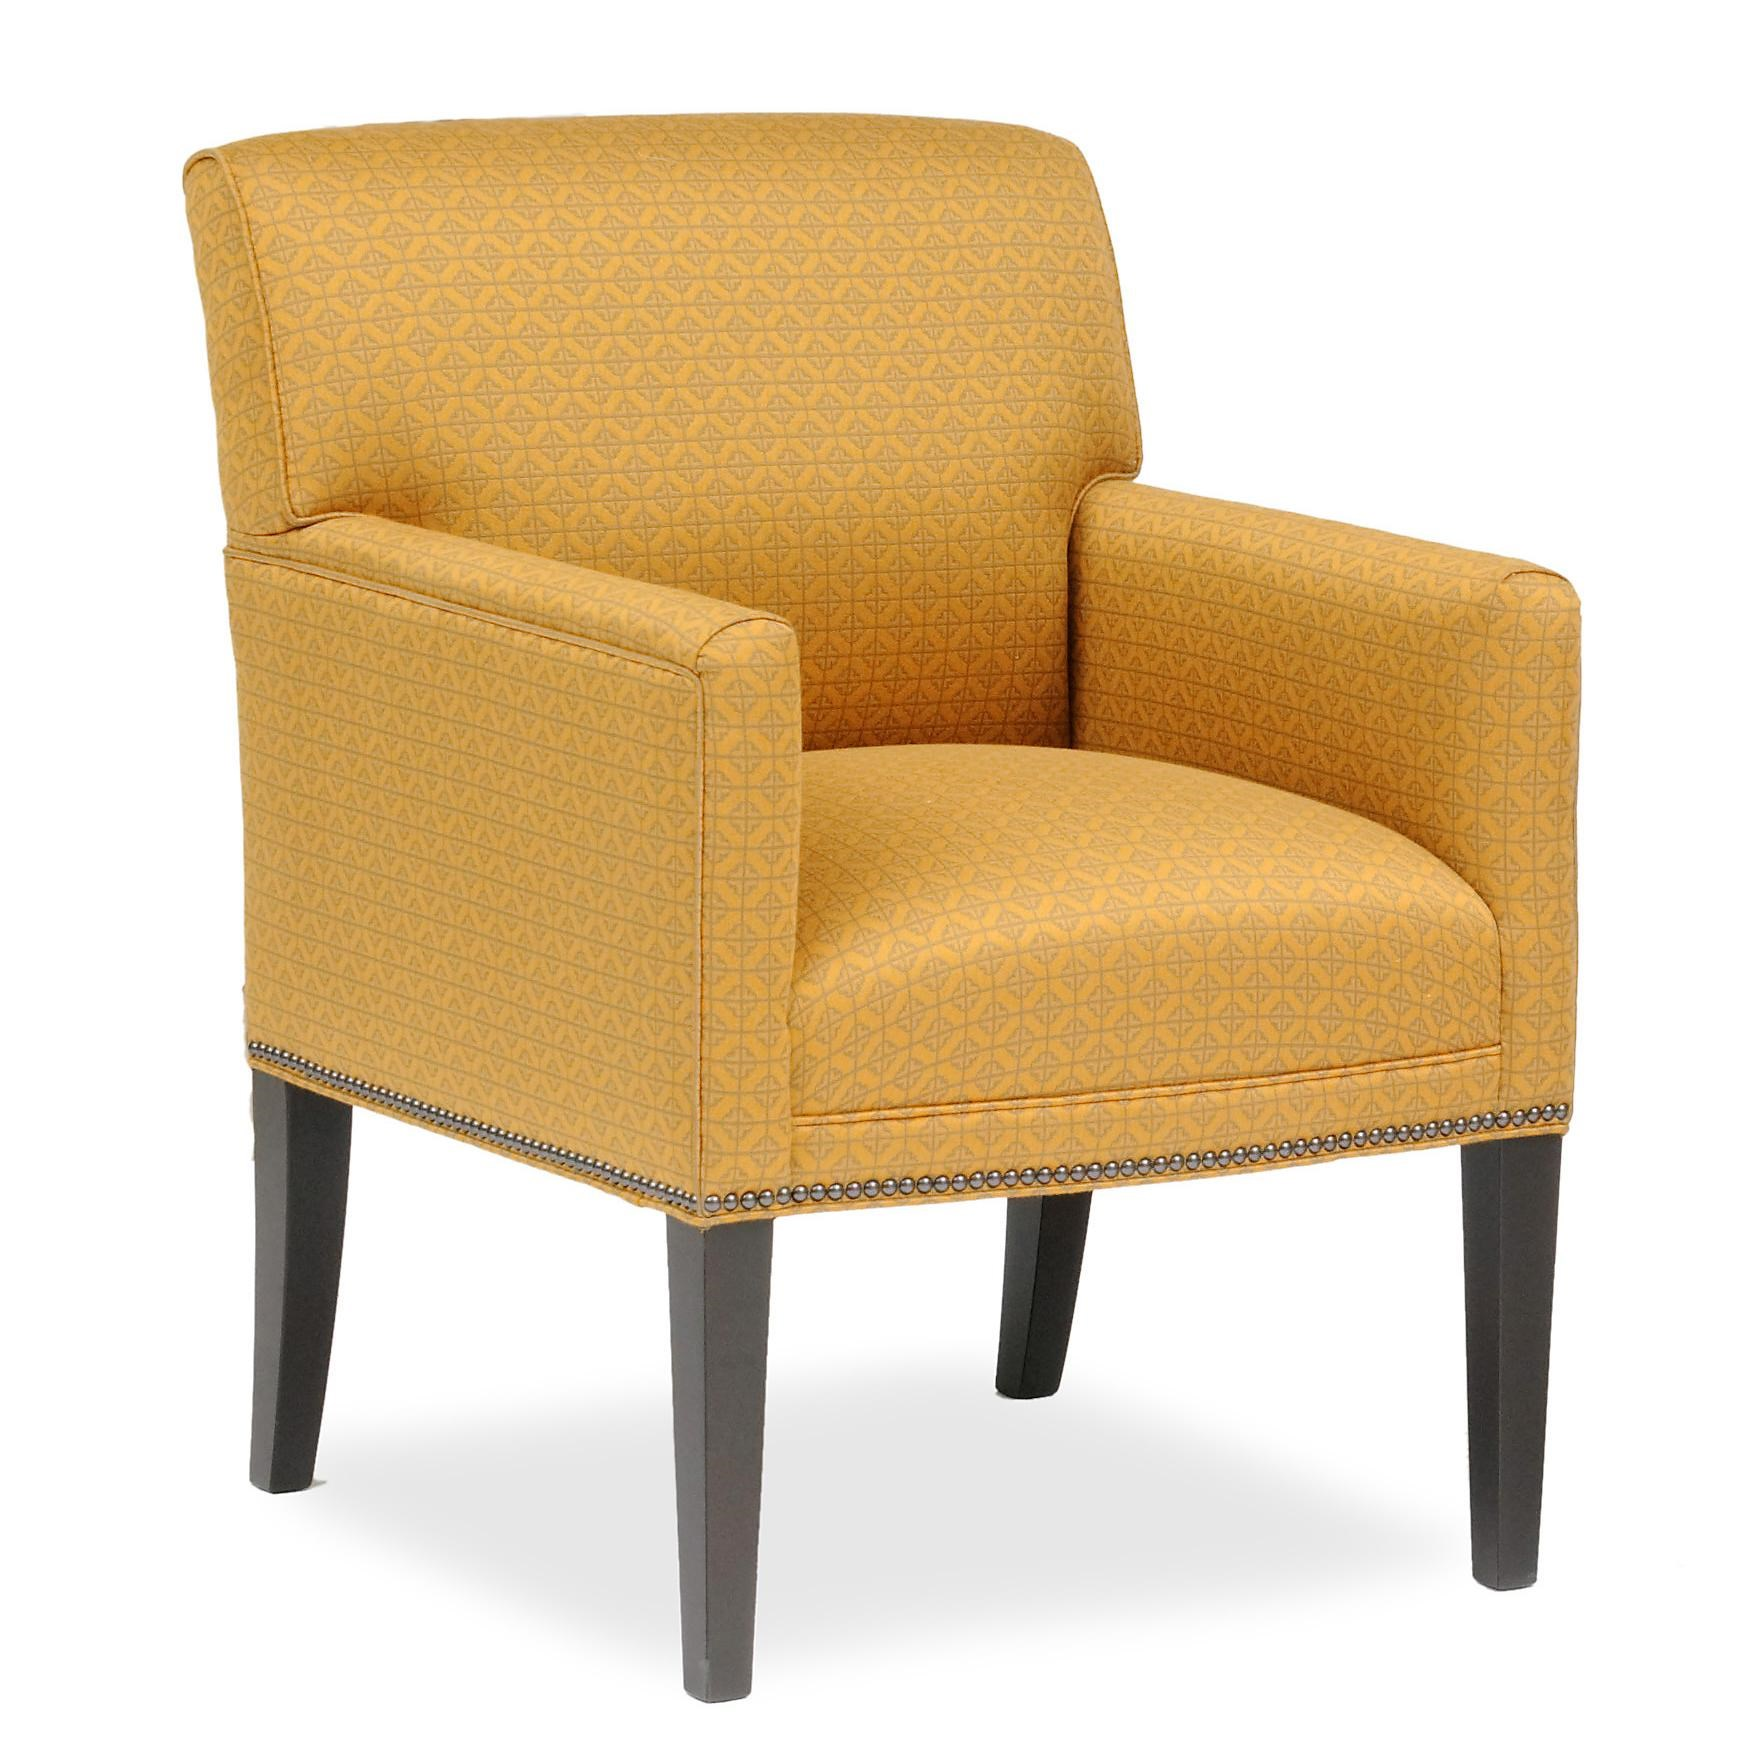 Merveilleux Smith Brothers Accent Chairs And Ottomans SBUpholstered Chair ...